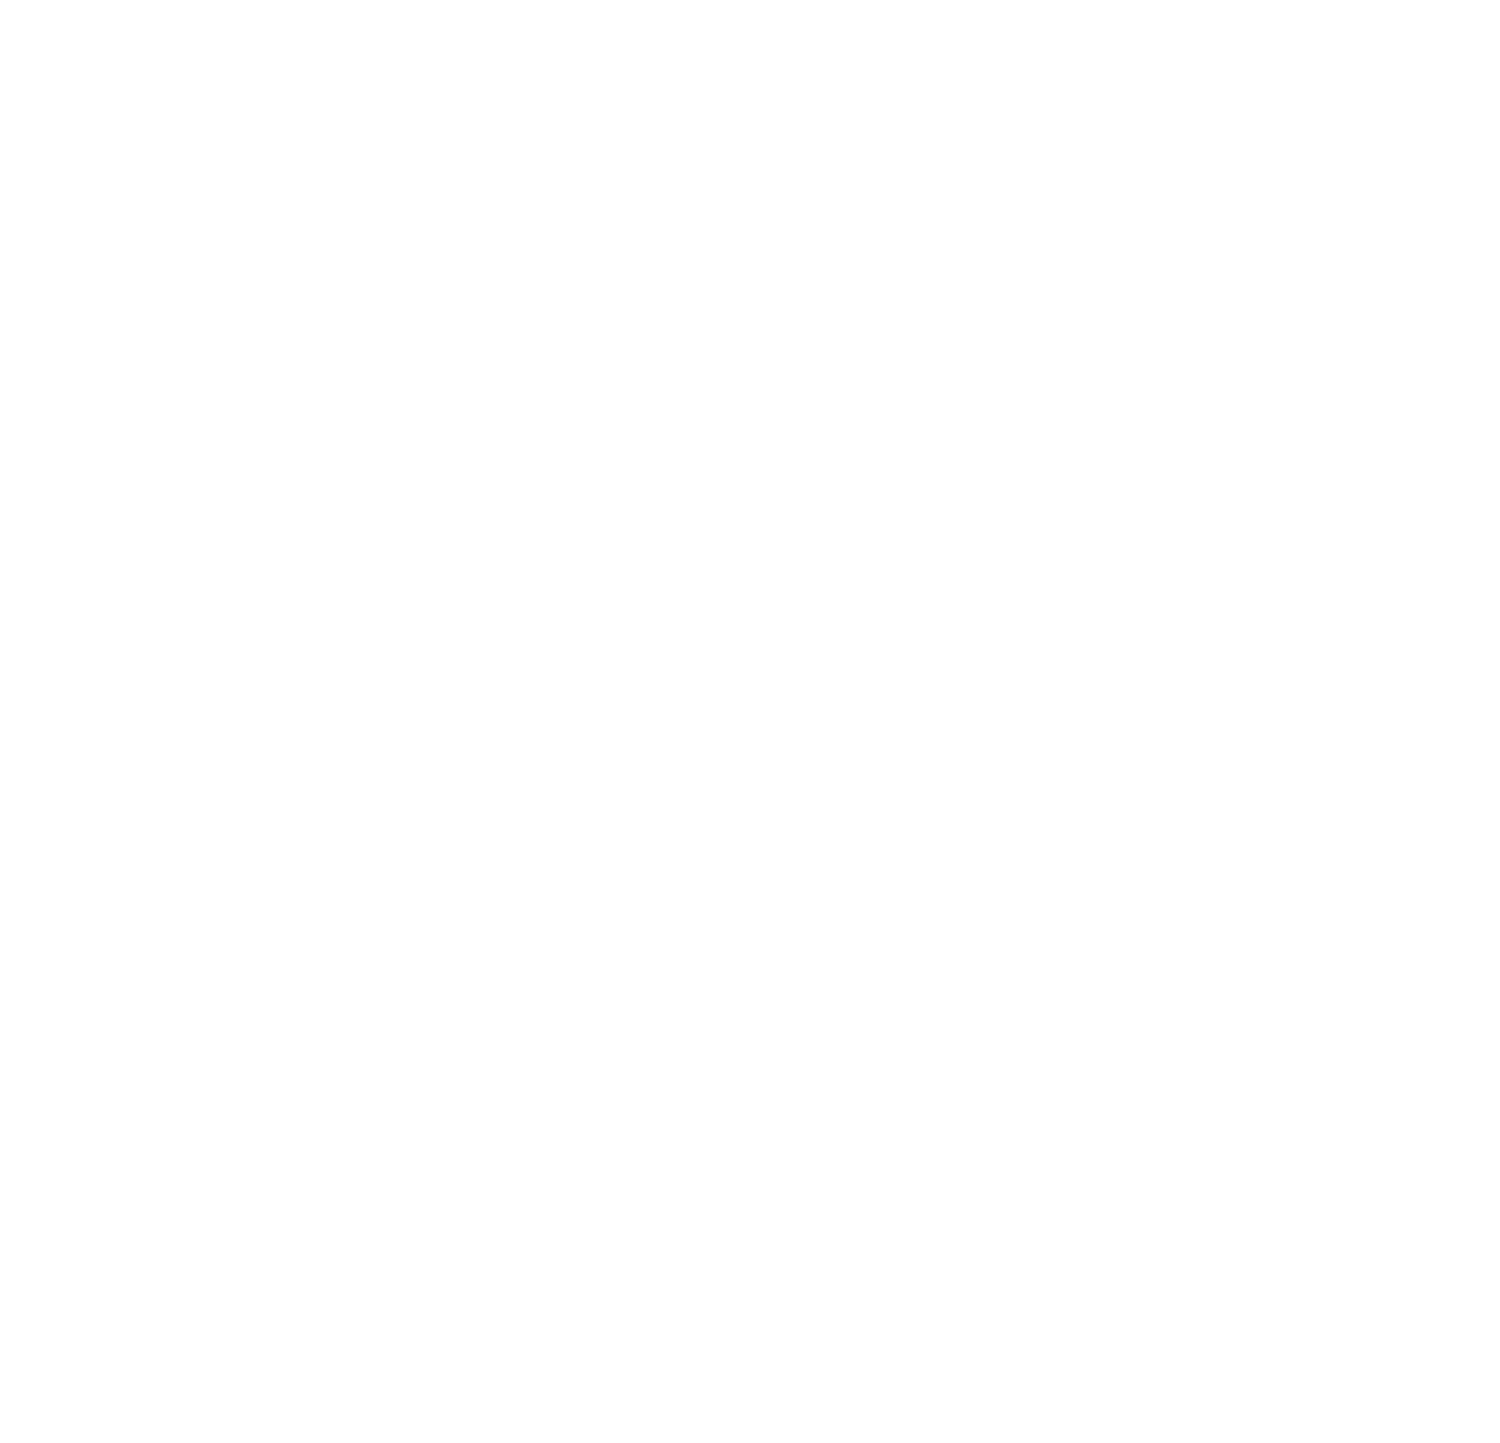 BIRDS | The culinary adventure